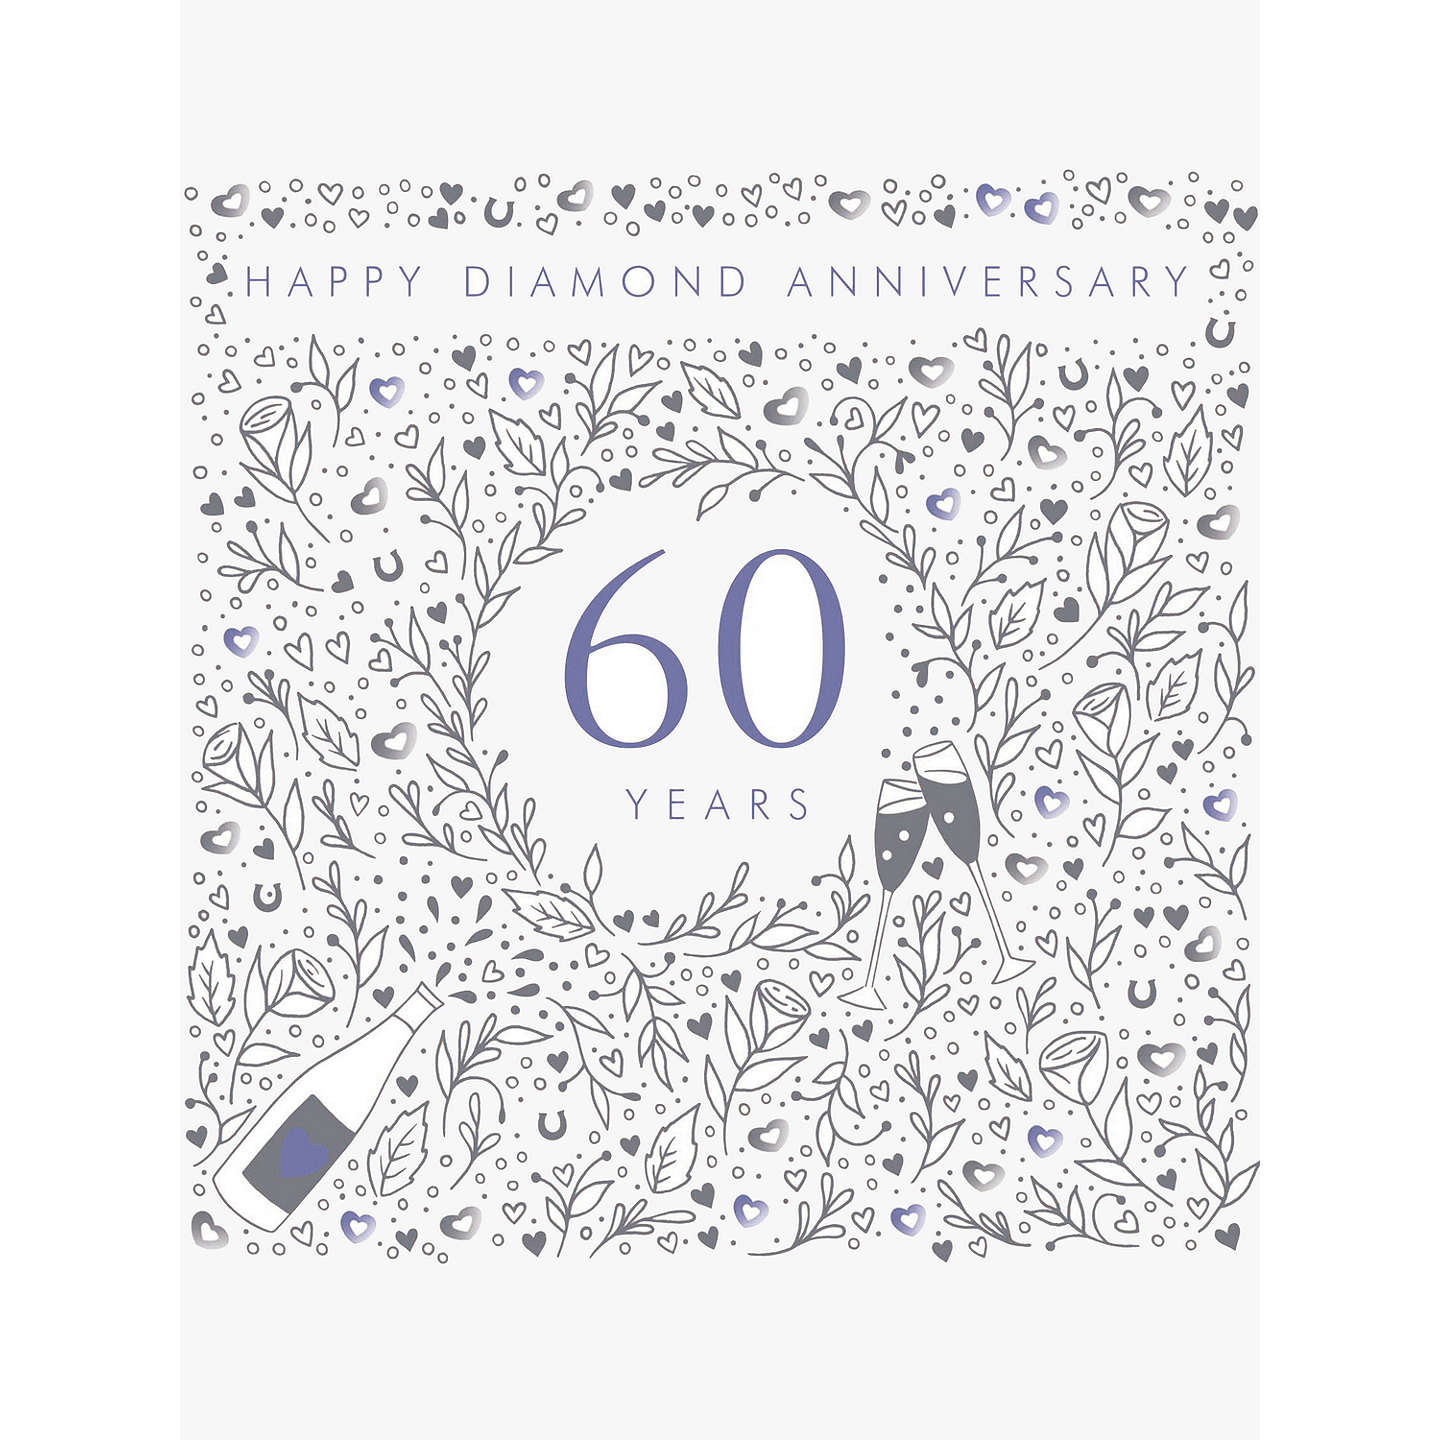 Woodmansterne 60th diamond wedding anniversary card at john lewis buywoodmansterne 60th diamond wedding anniversary card online at johnlewis kristyandbryce Choice Image